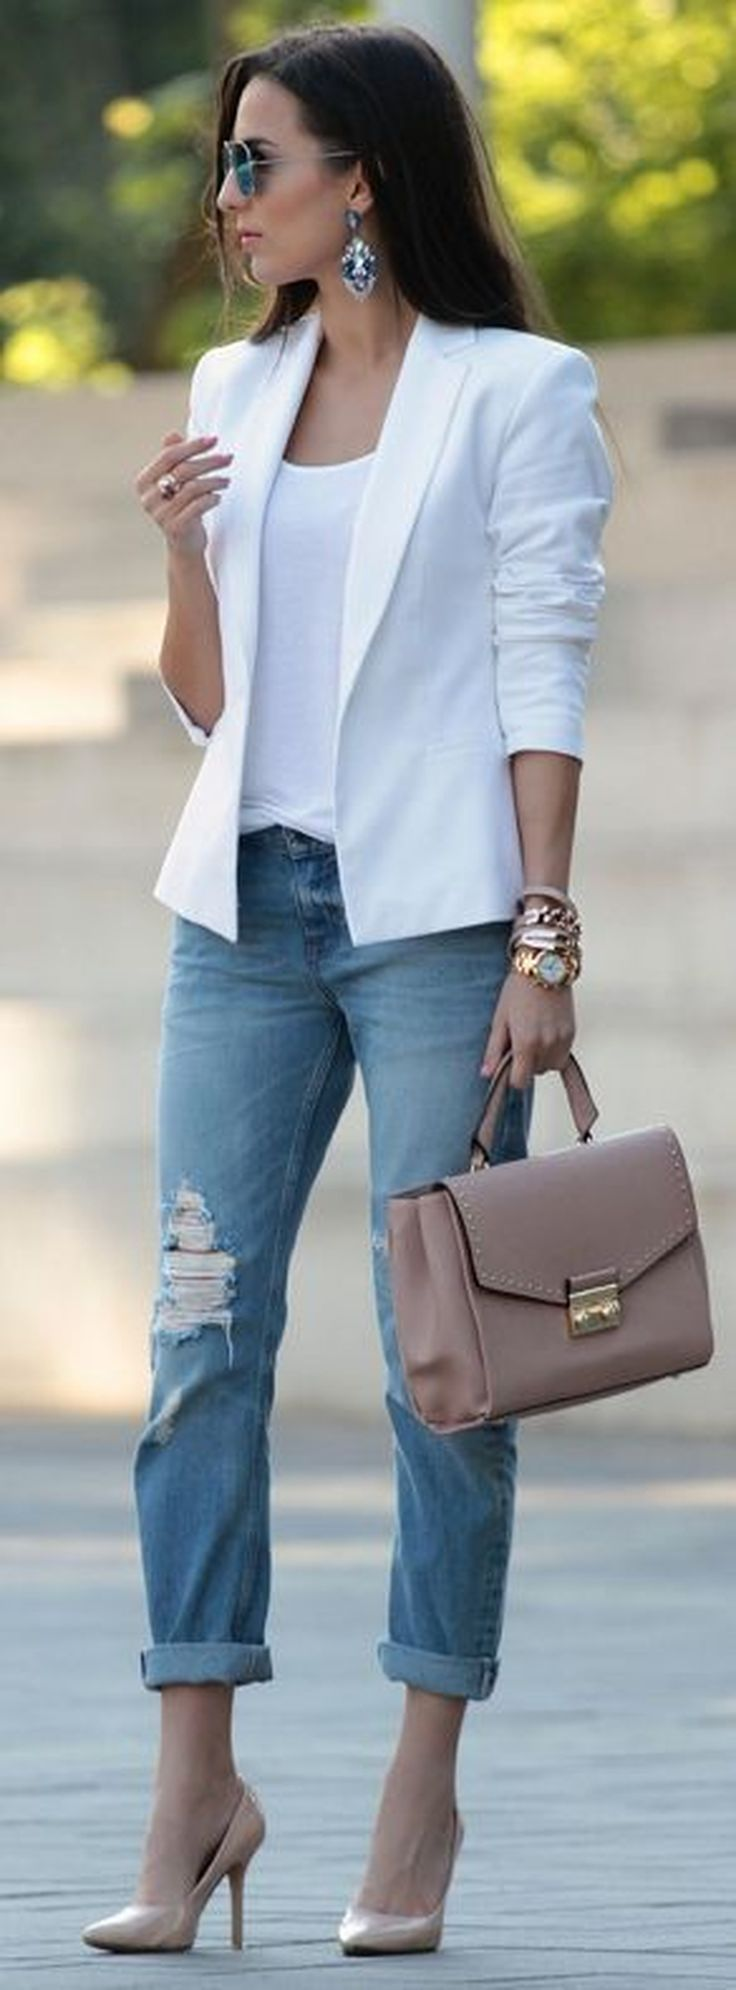 1082 best Fashioninspiration images on Pinterest | Feminine fashion ...